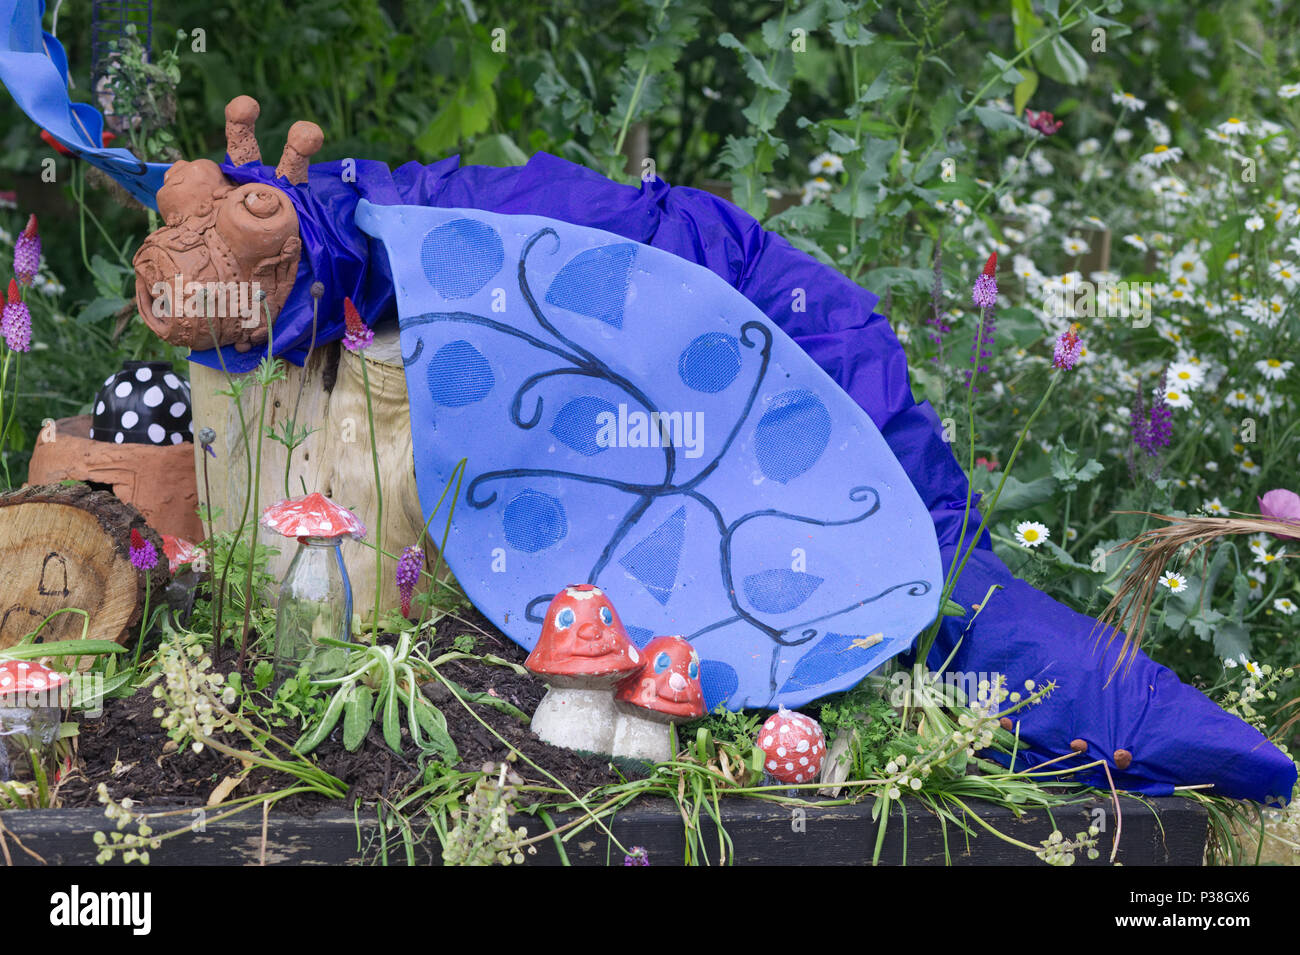 Alice And Wonderland Through The Looking Glass Handmade Garden